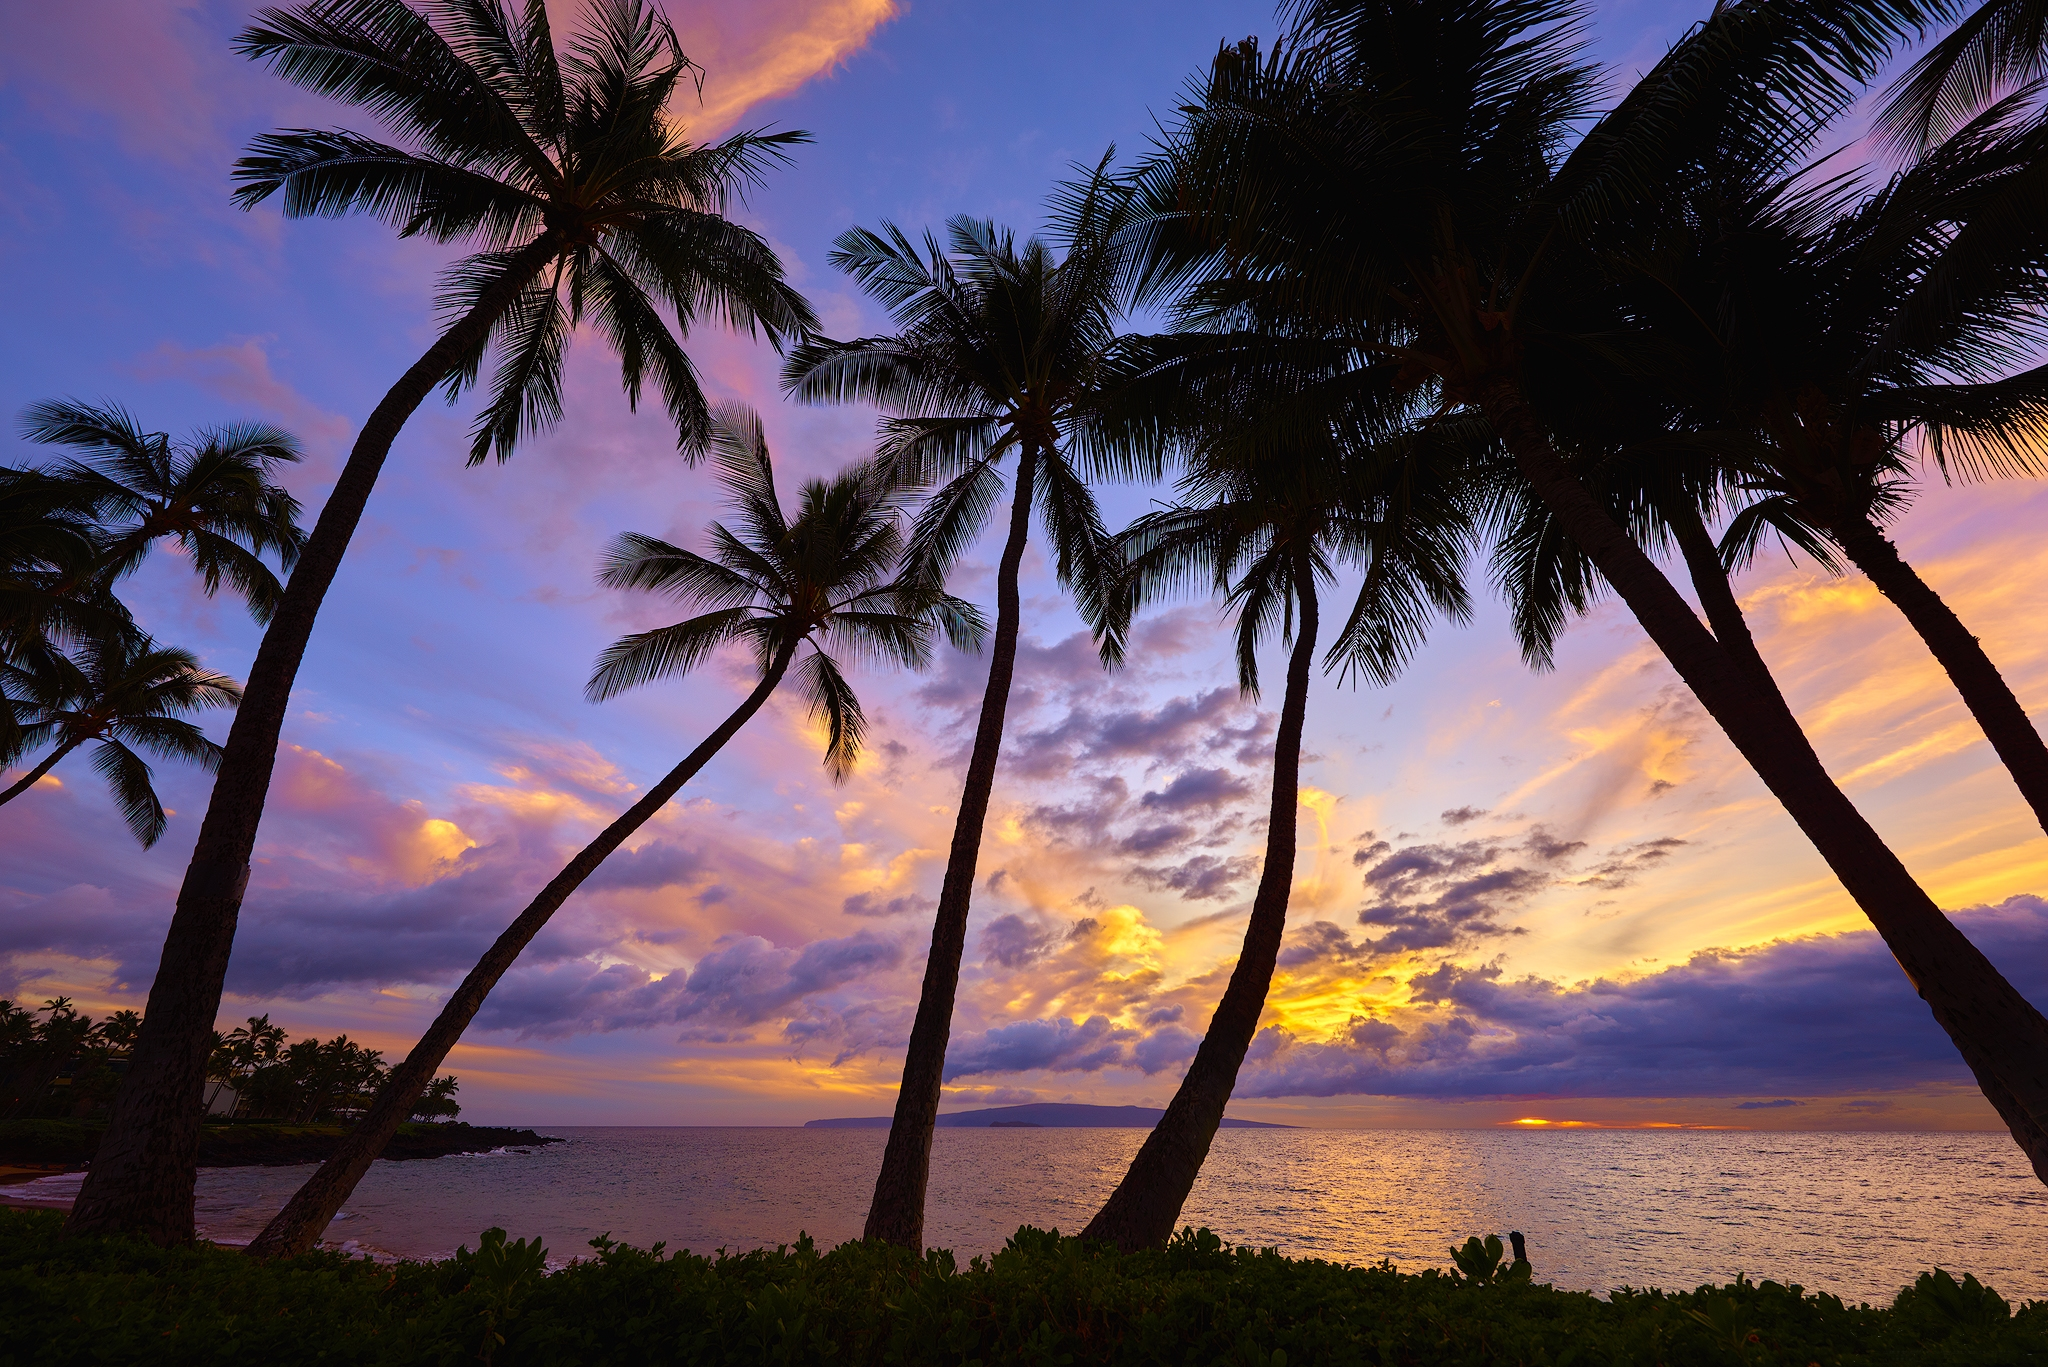 palm trees in the sunset hd wallpaper background image